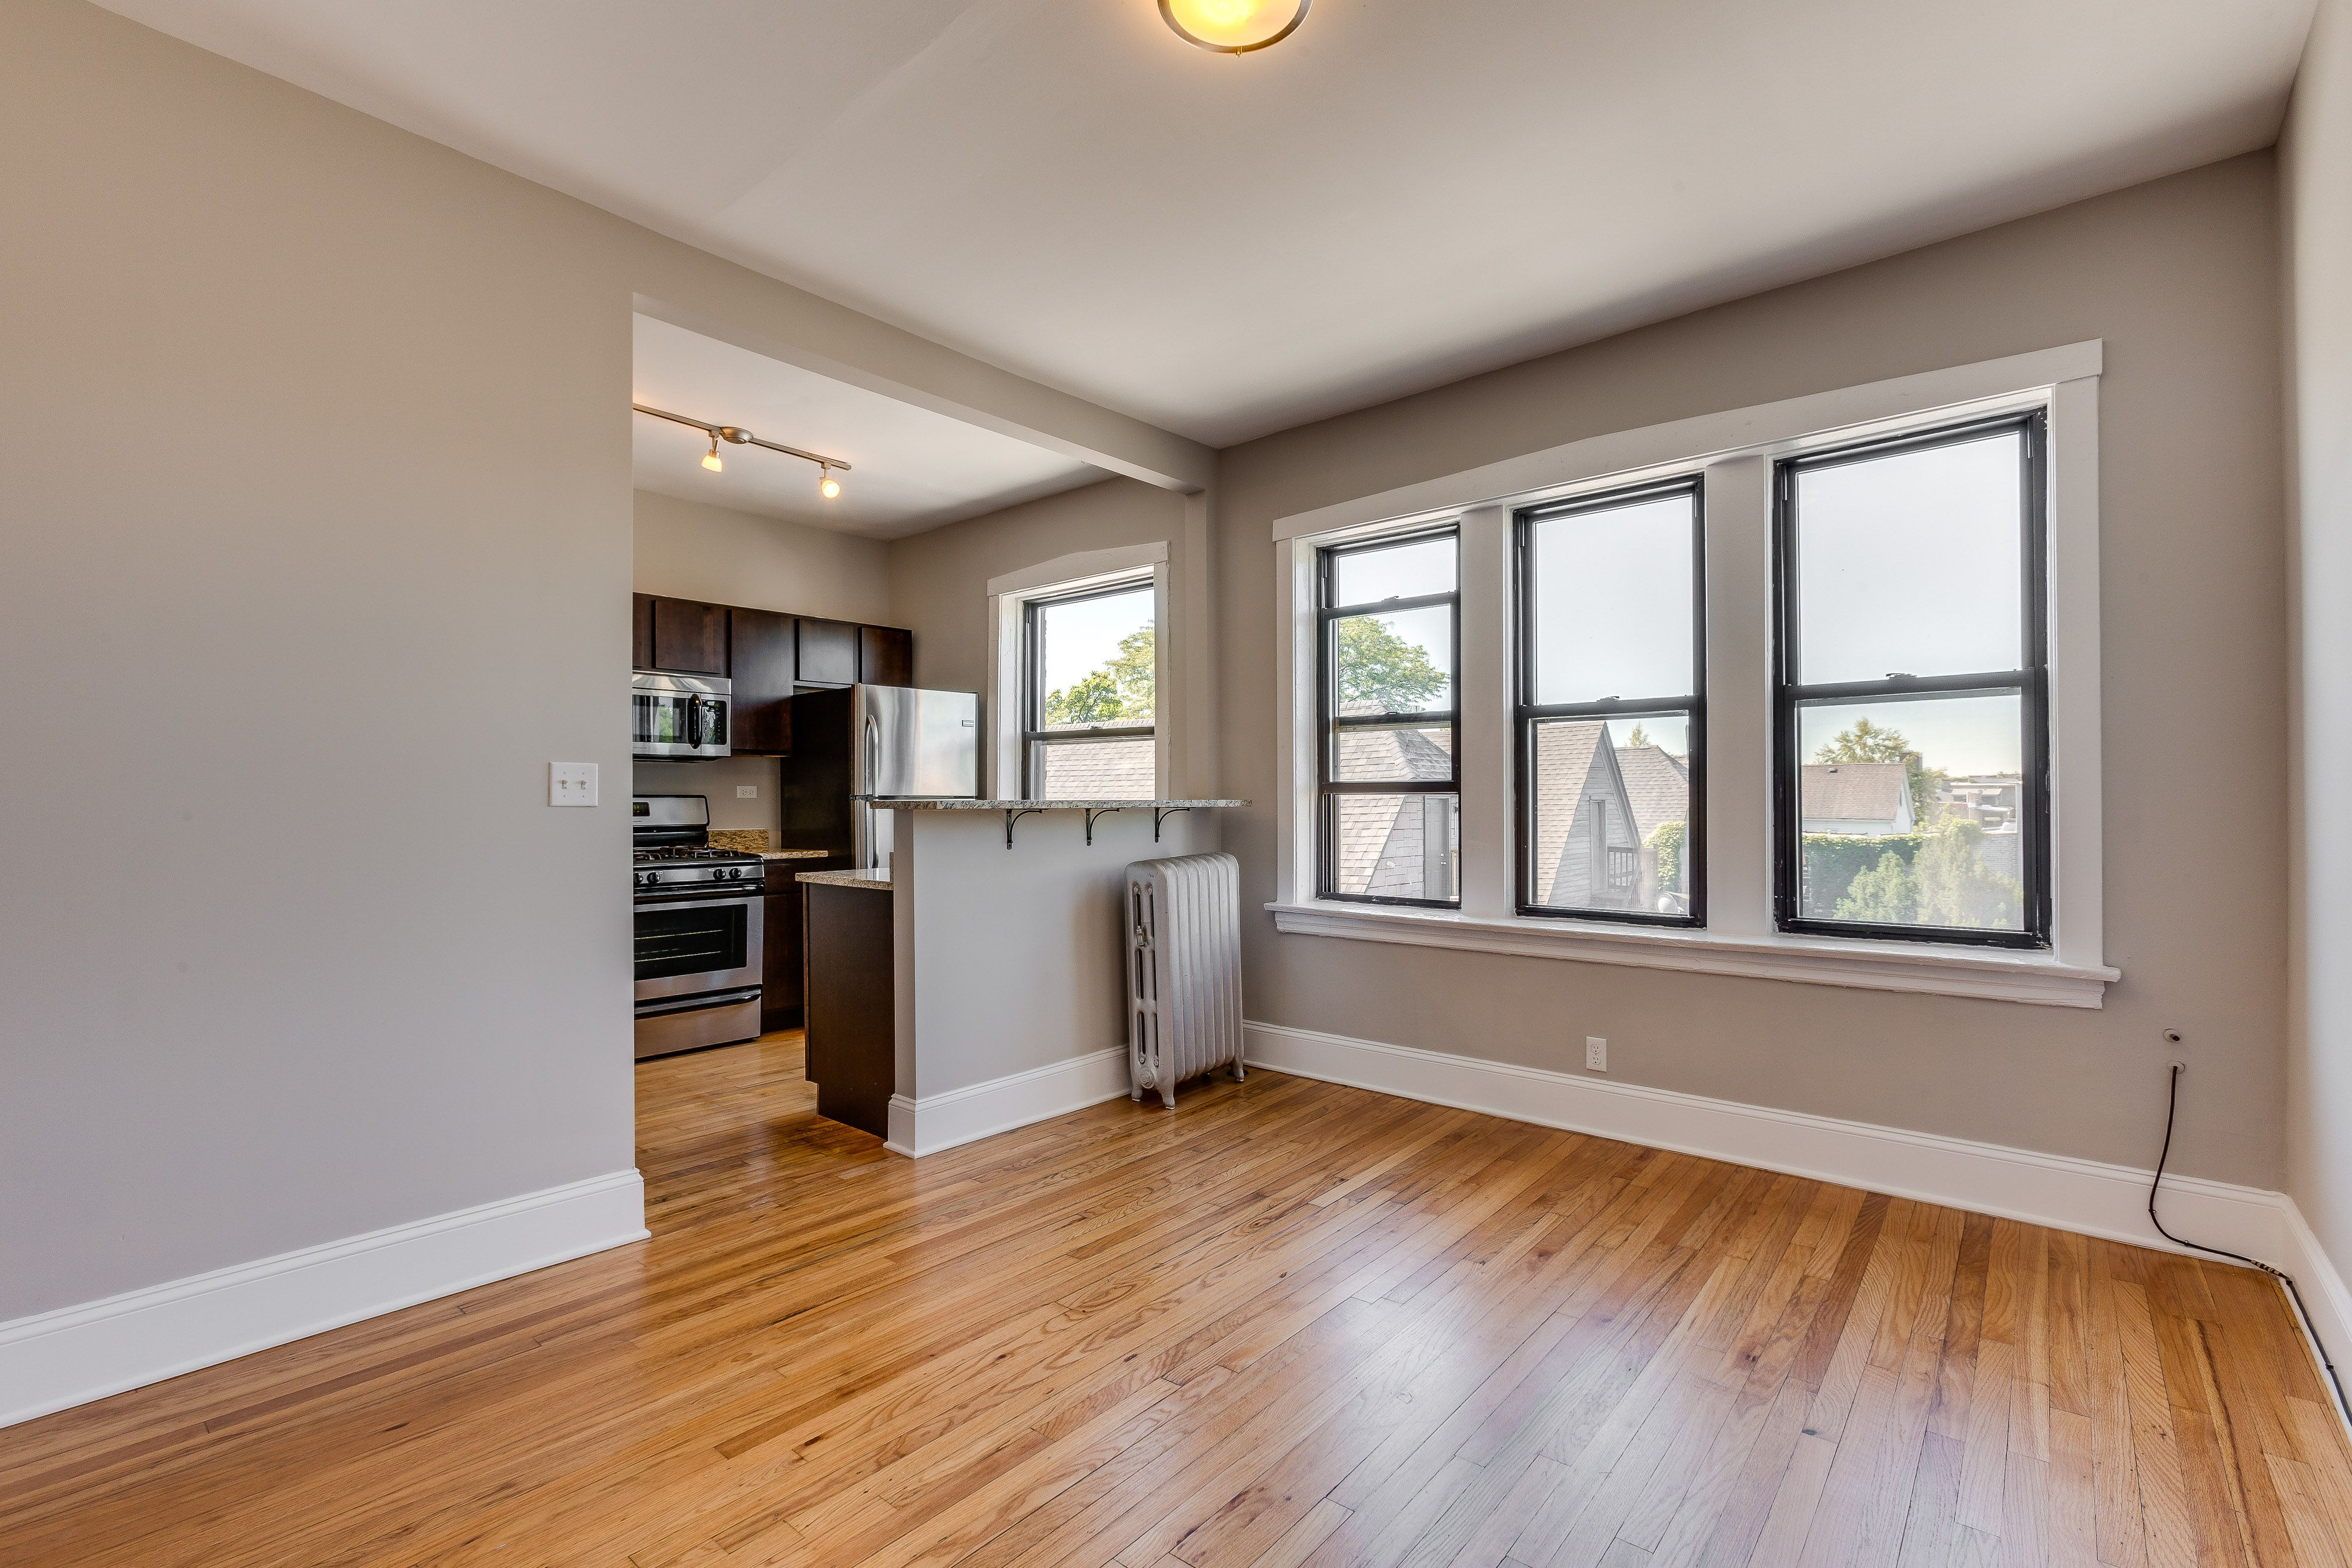 Renovated Apartment In Logan Square Chicago With Hardwood Floors